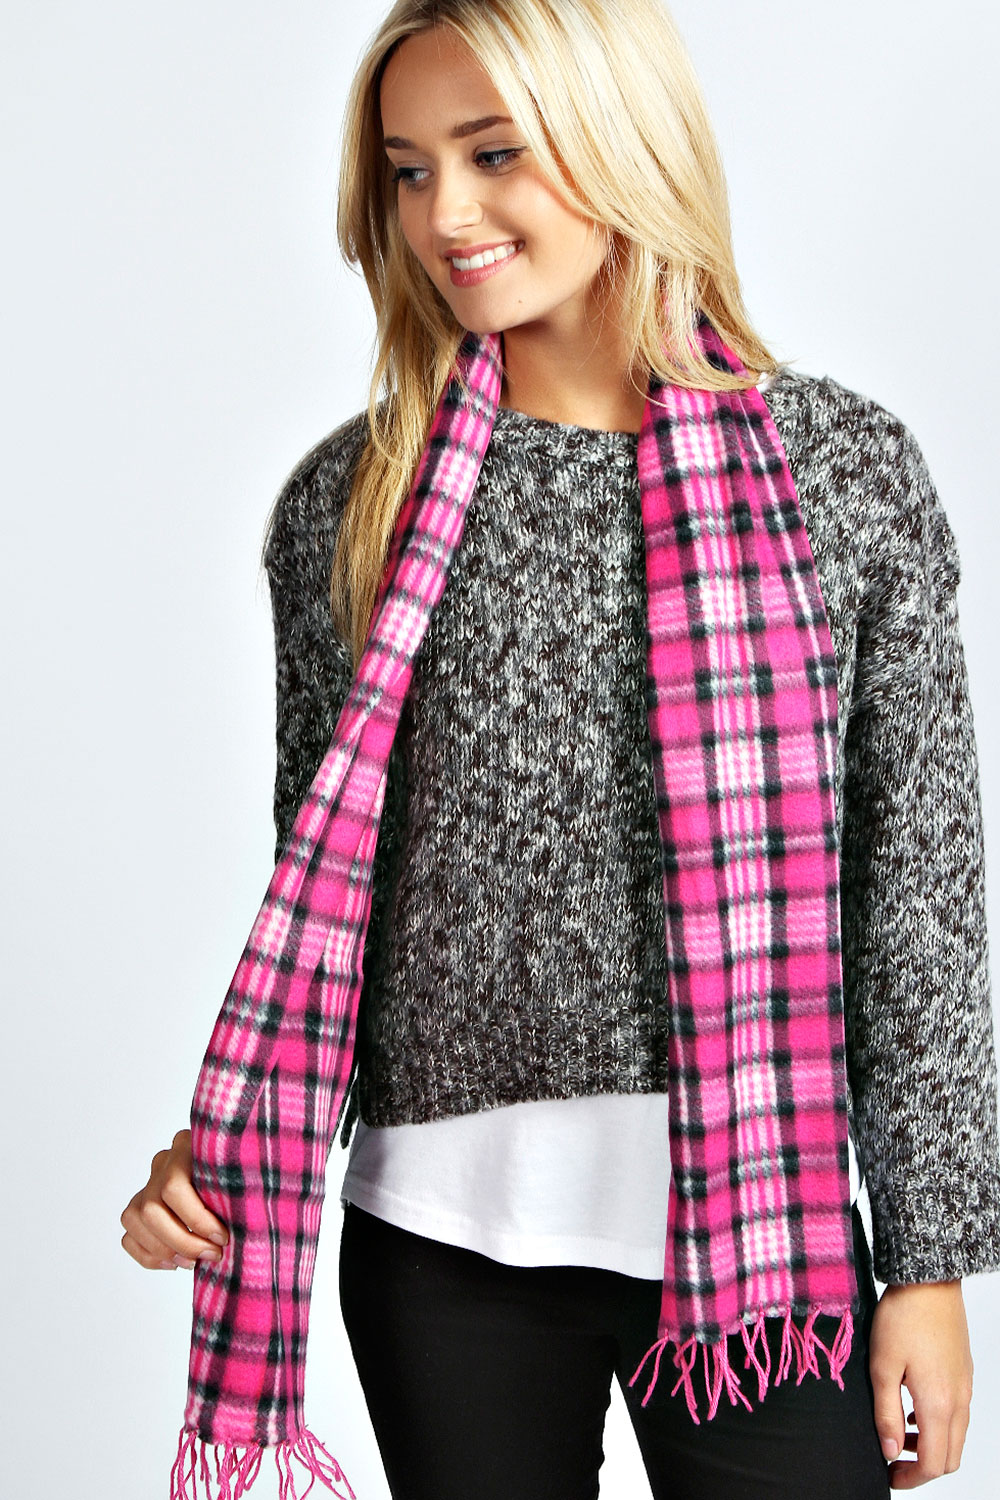 Boohoo-Womens-Ladies-Saara-Checked-Tartan-Fleece-Scarf-One-Size